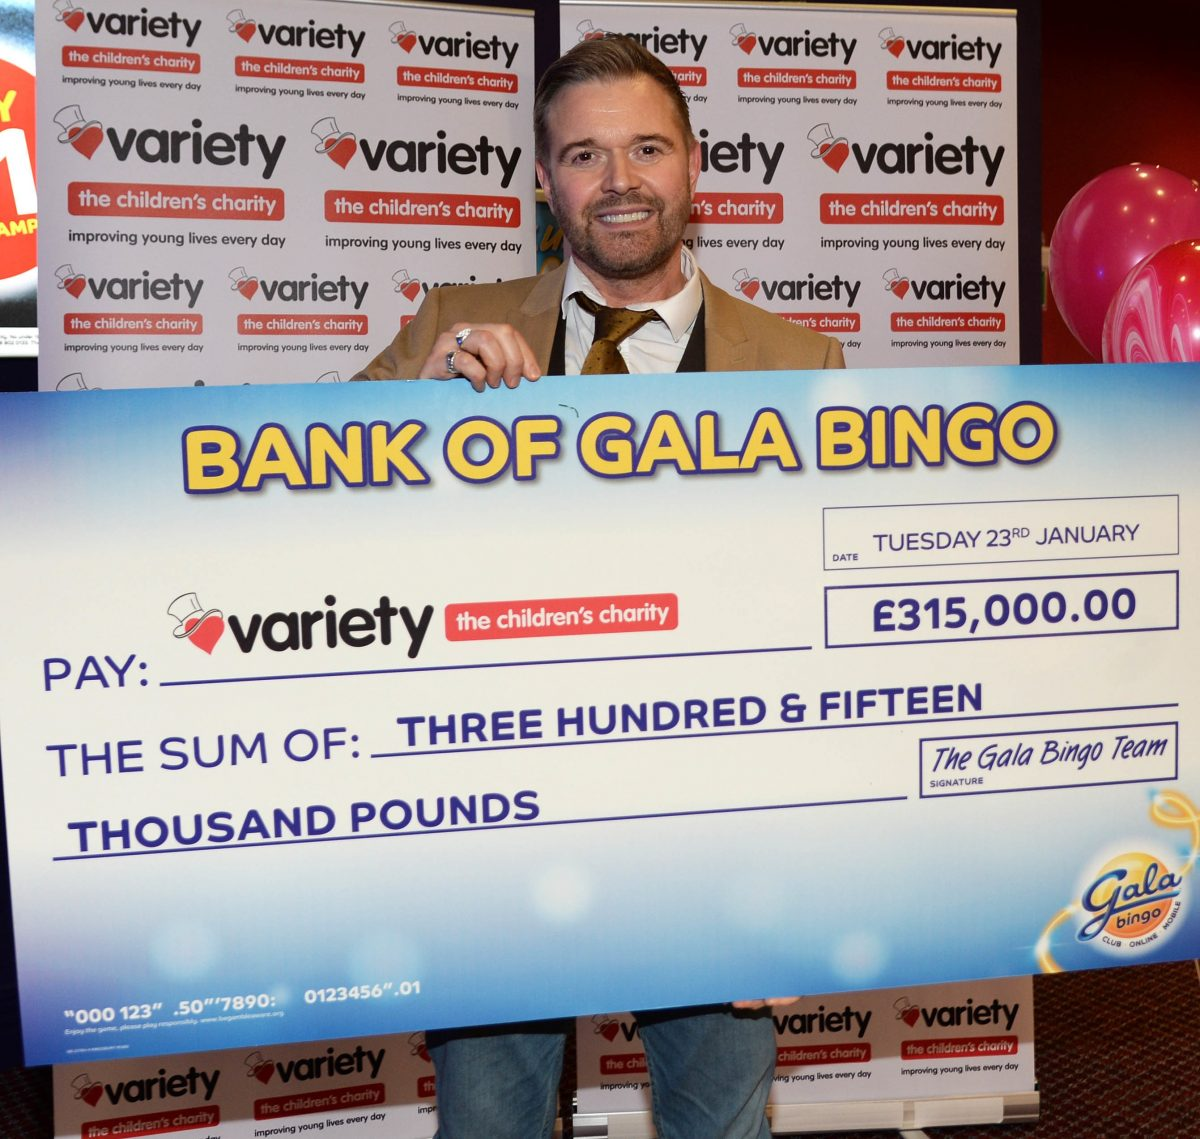 Gala Bingo Kingsbury Road presents Variety, the Children's Charity, with a cheque for £315,000 with special guest Darren Day